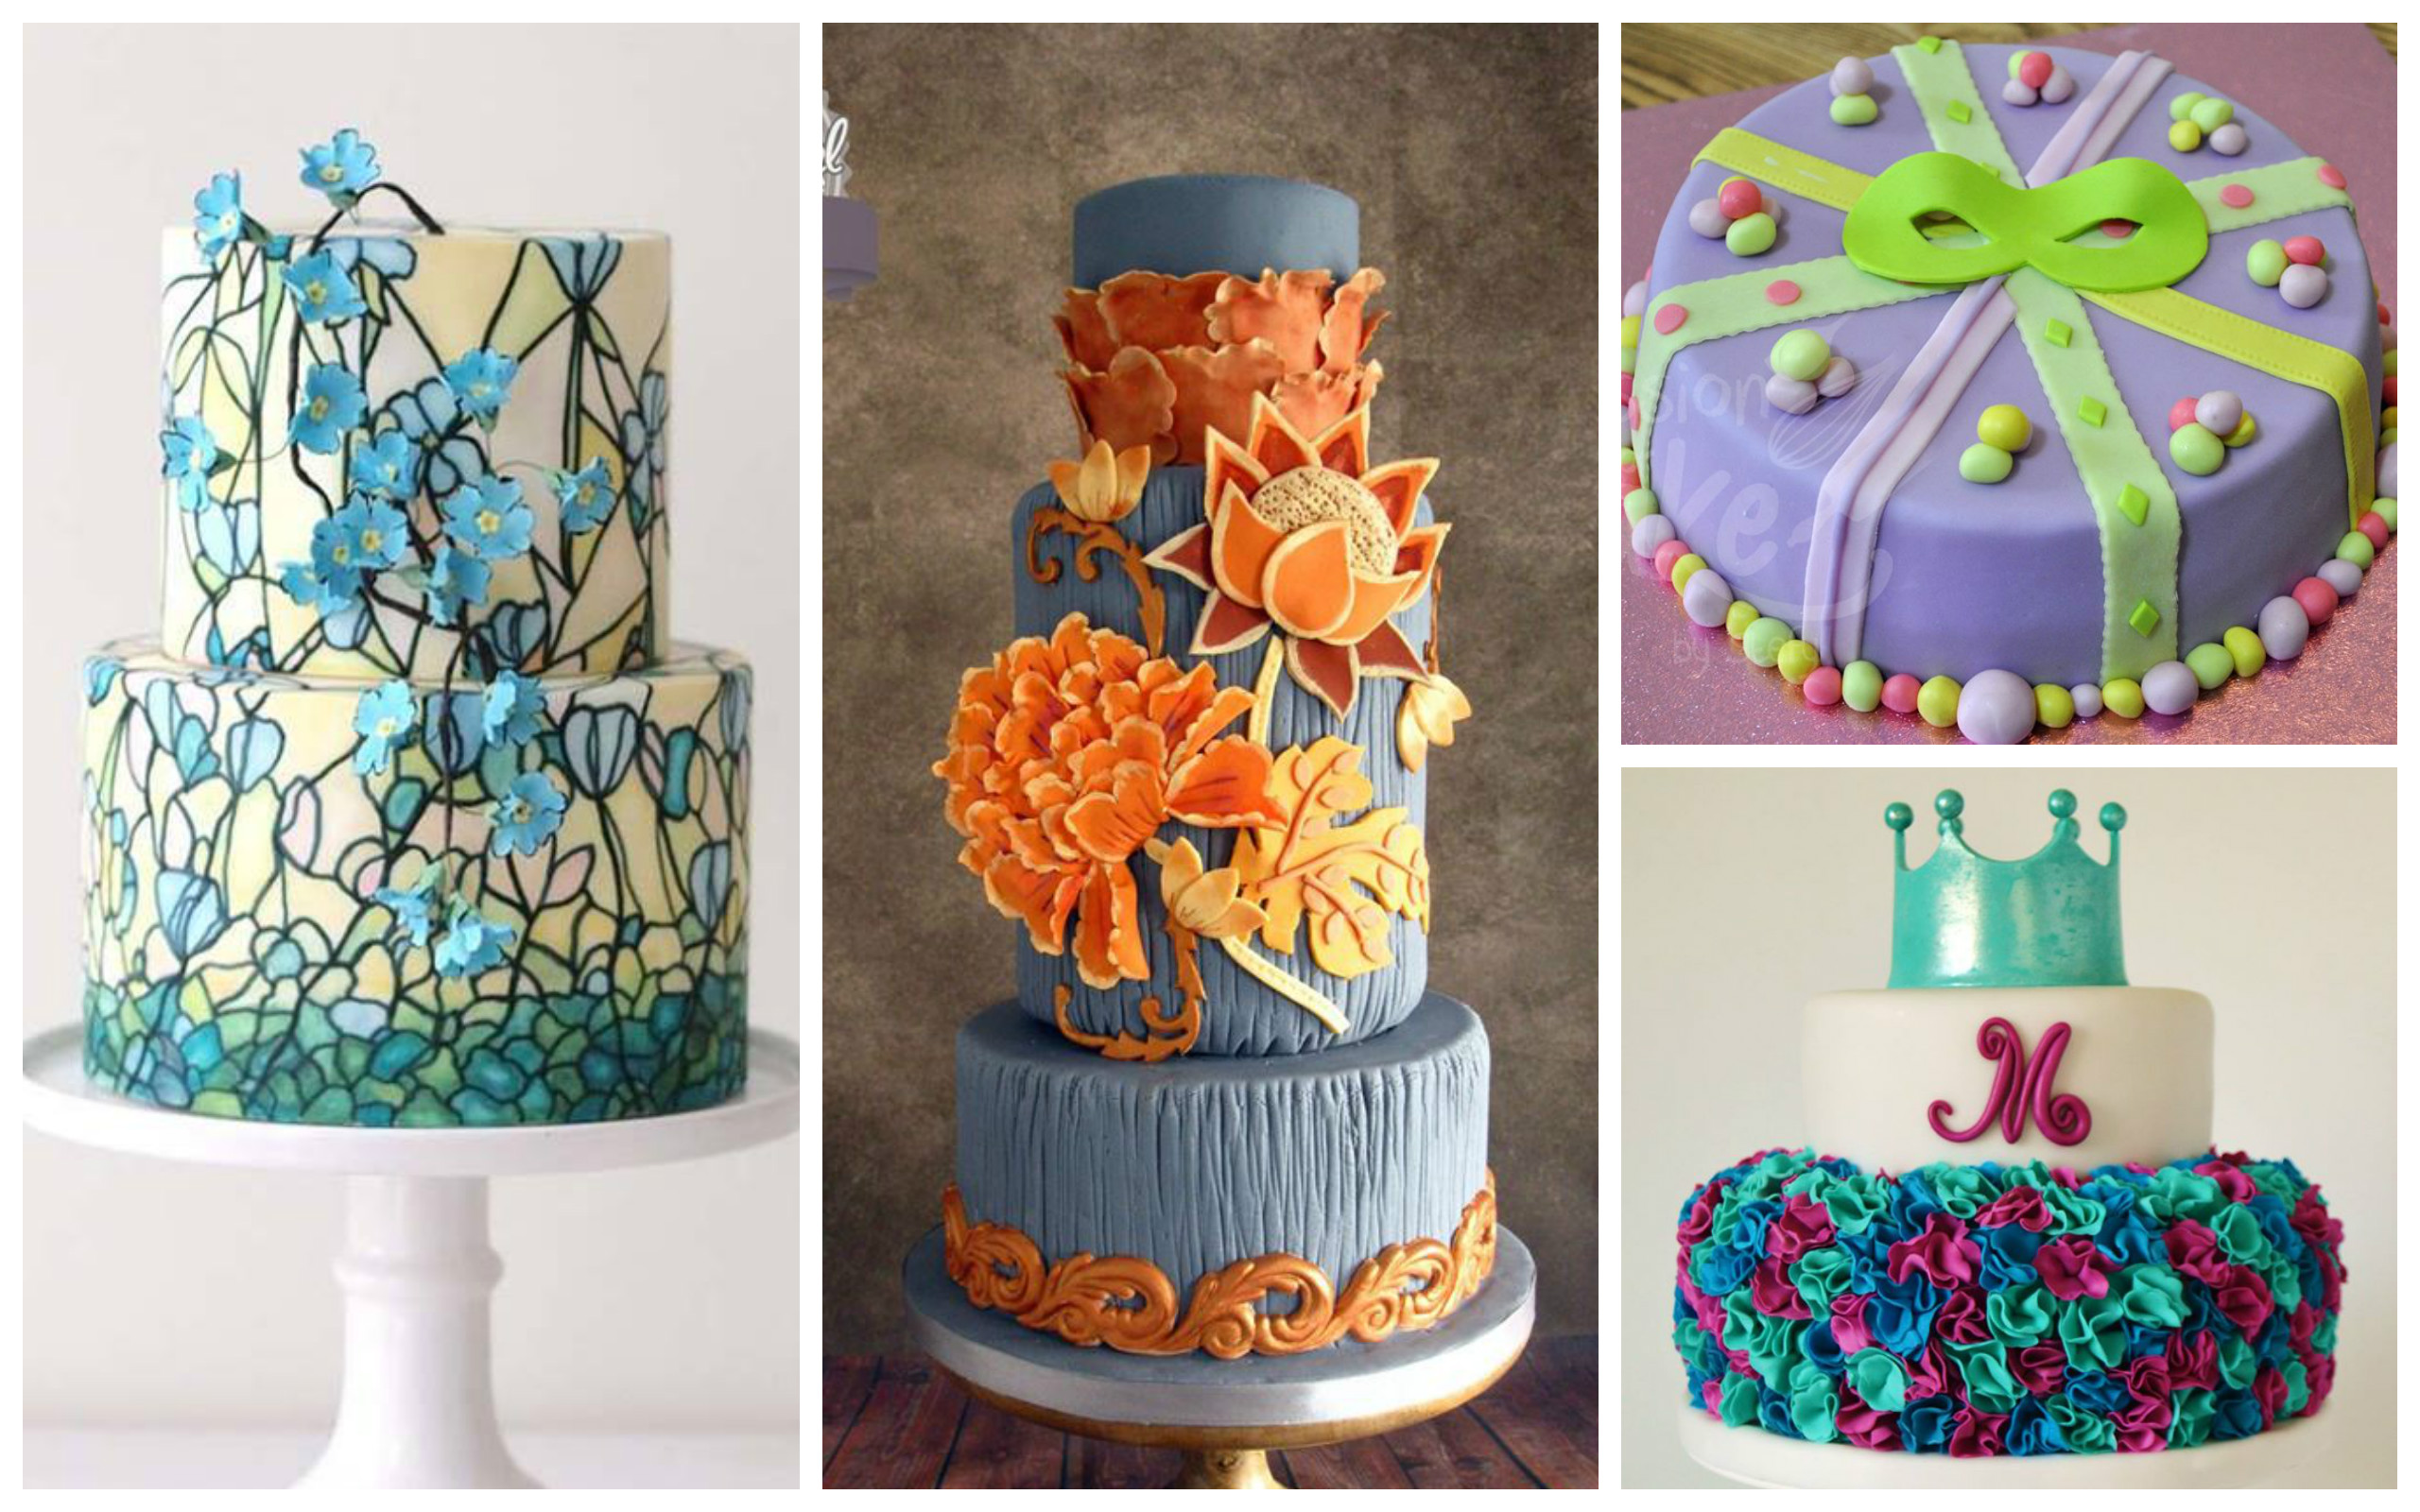 Competition World S Top Rated Cake Designer Page 9 Of 13